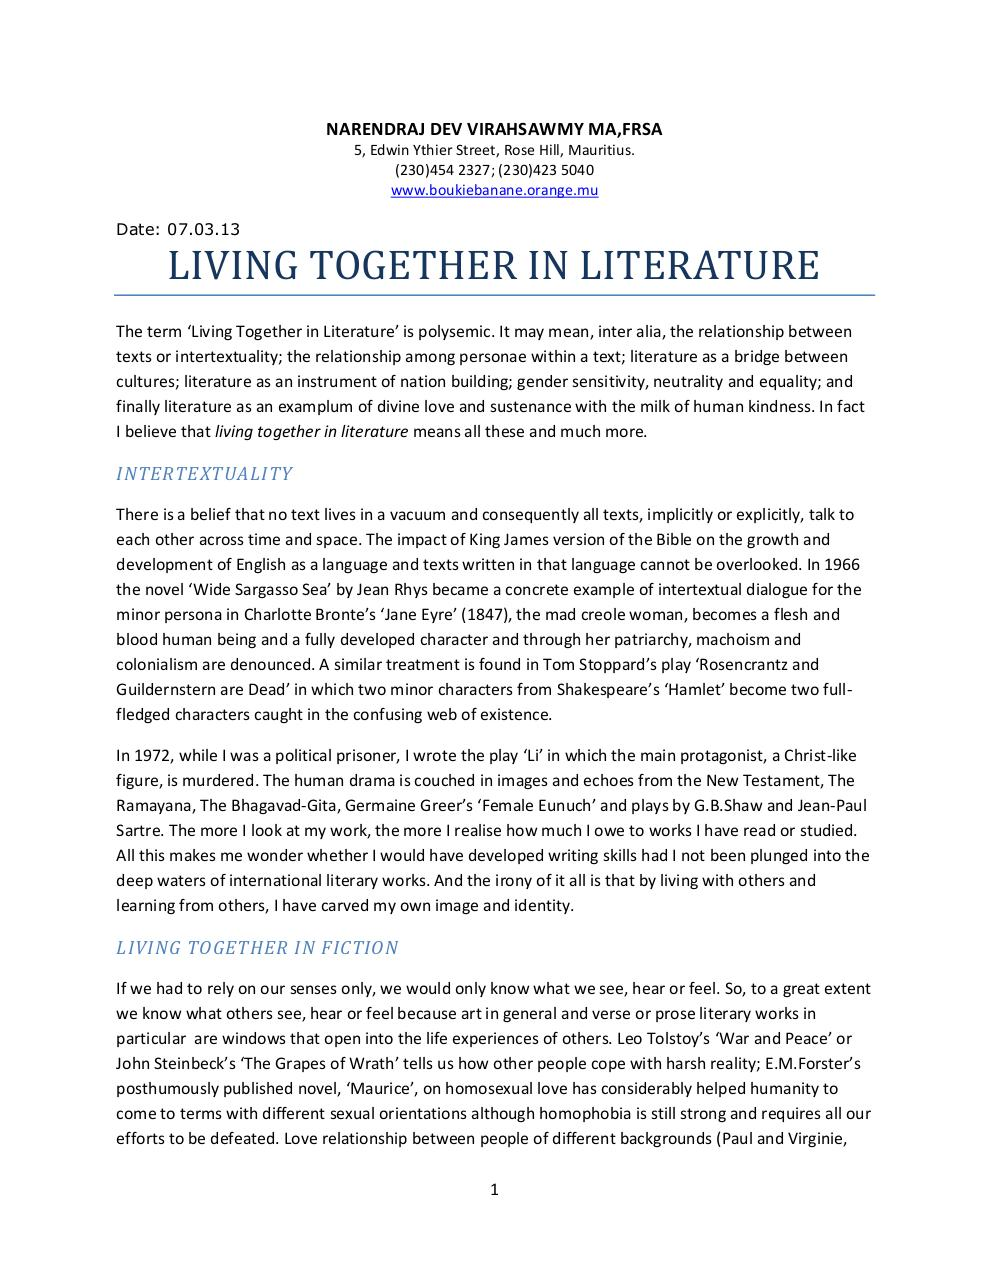 LIVING TOGETHER_CONFLUENCE.pdf - page 1/4